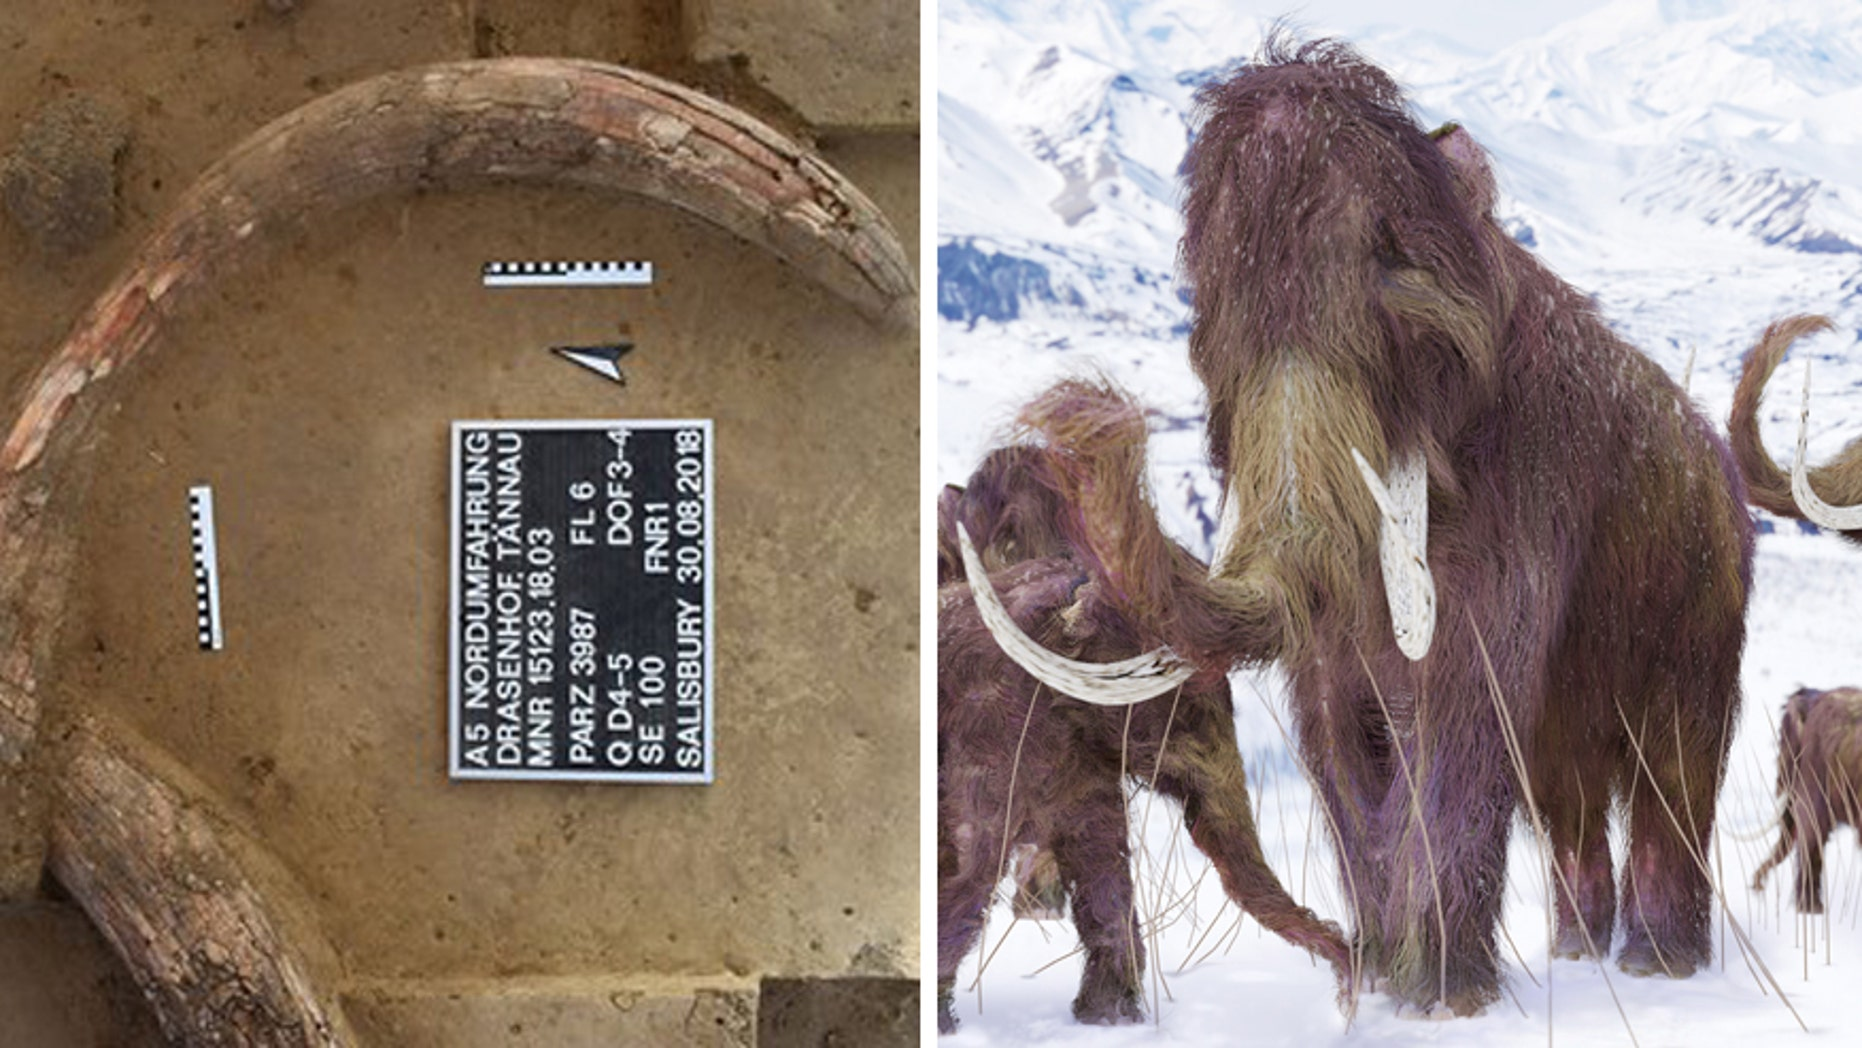 A mammoth tusk at the Stone Age 'kill site/artist's illustration of a woolly mammoth (ASFiNAG/iStock/Aunt_Spray)